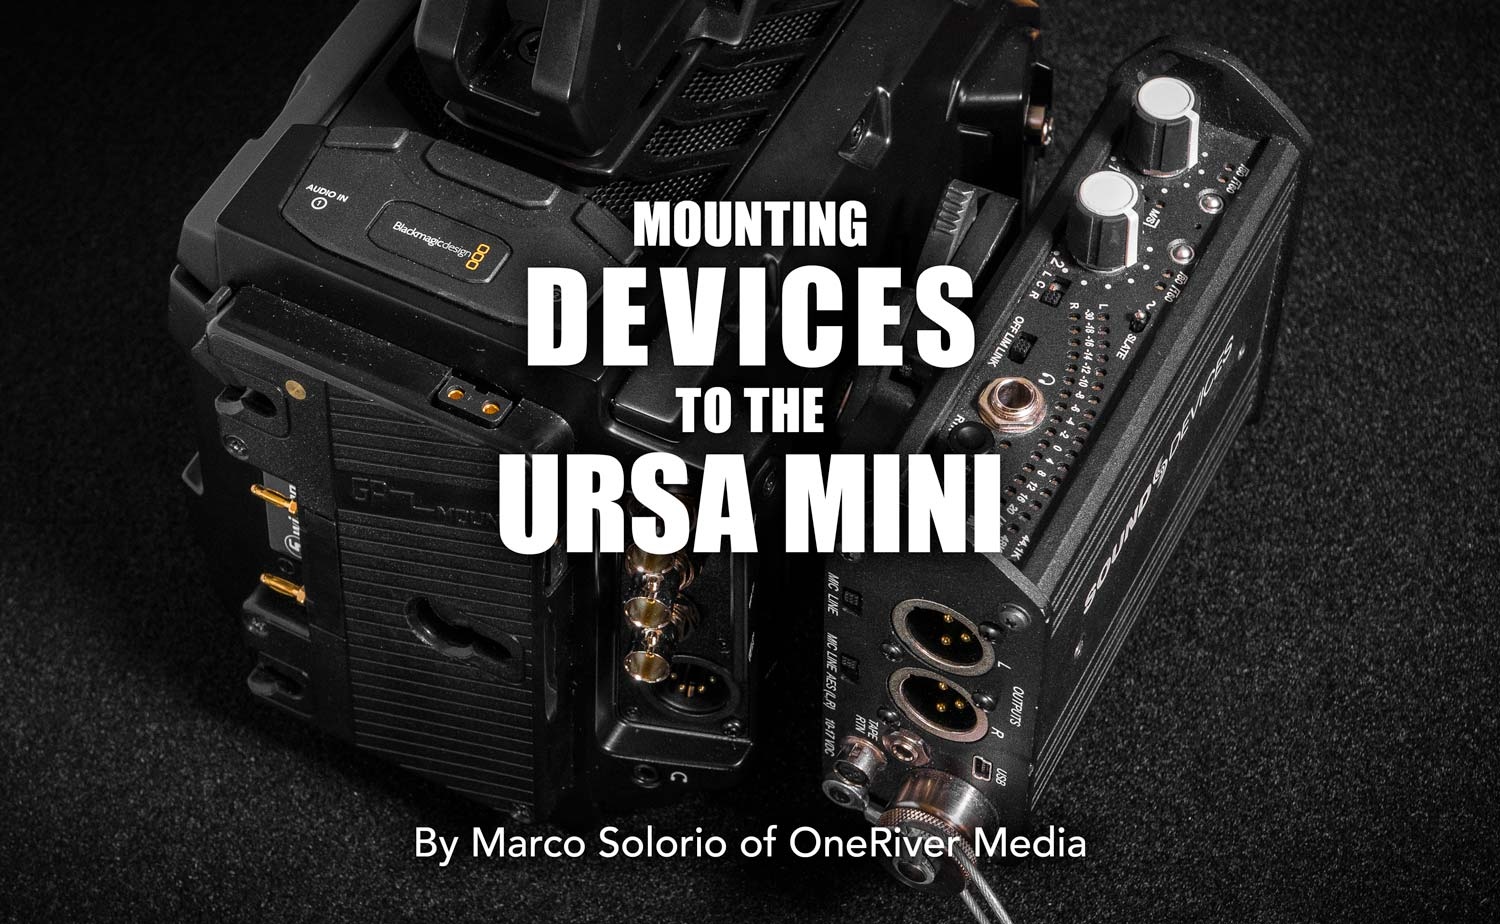 Mounting-Devices-to-the-URSA-Mini-Header-L1010352.01